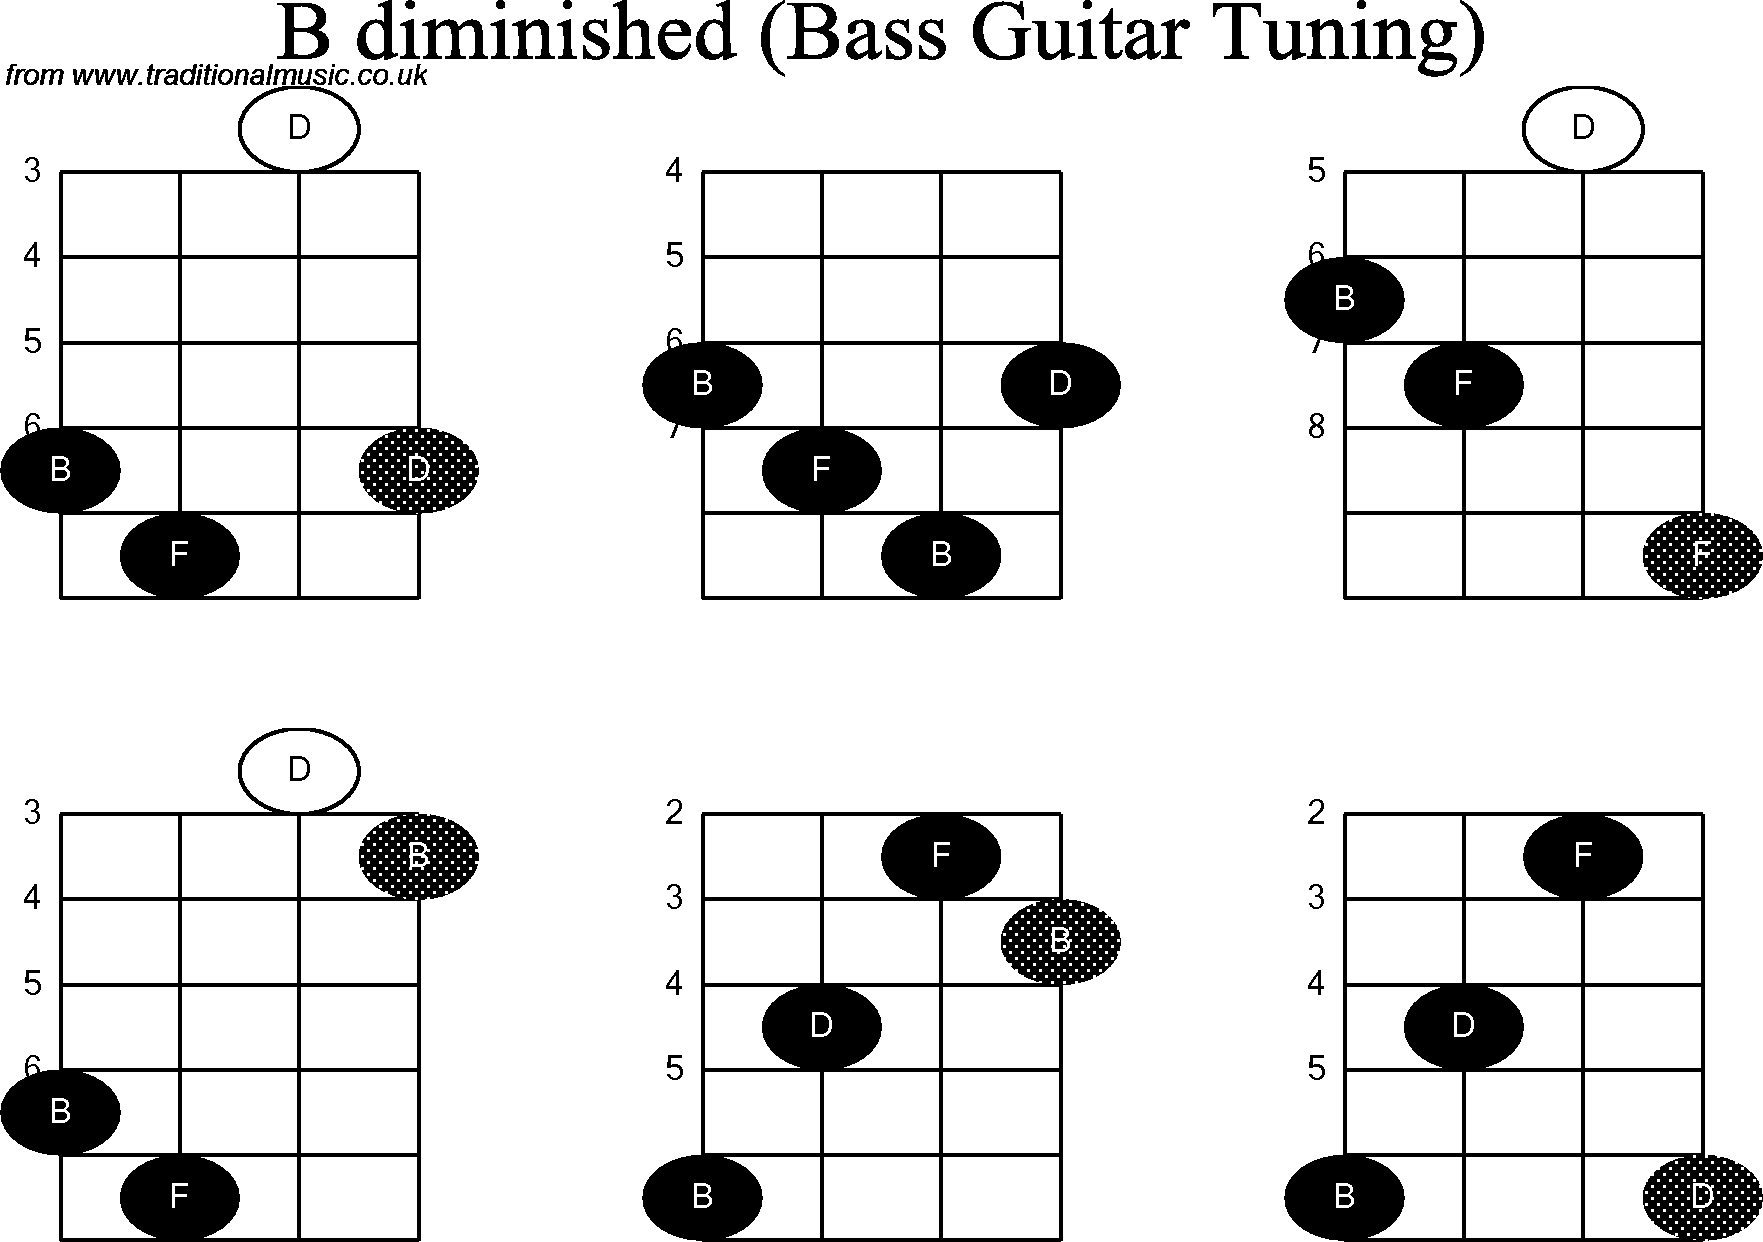 Bass Guitar Chord Diagrams For B Diminished